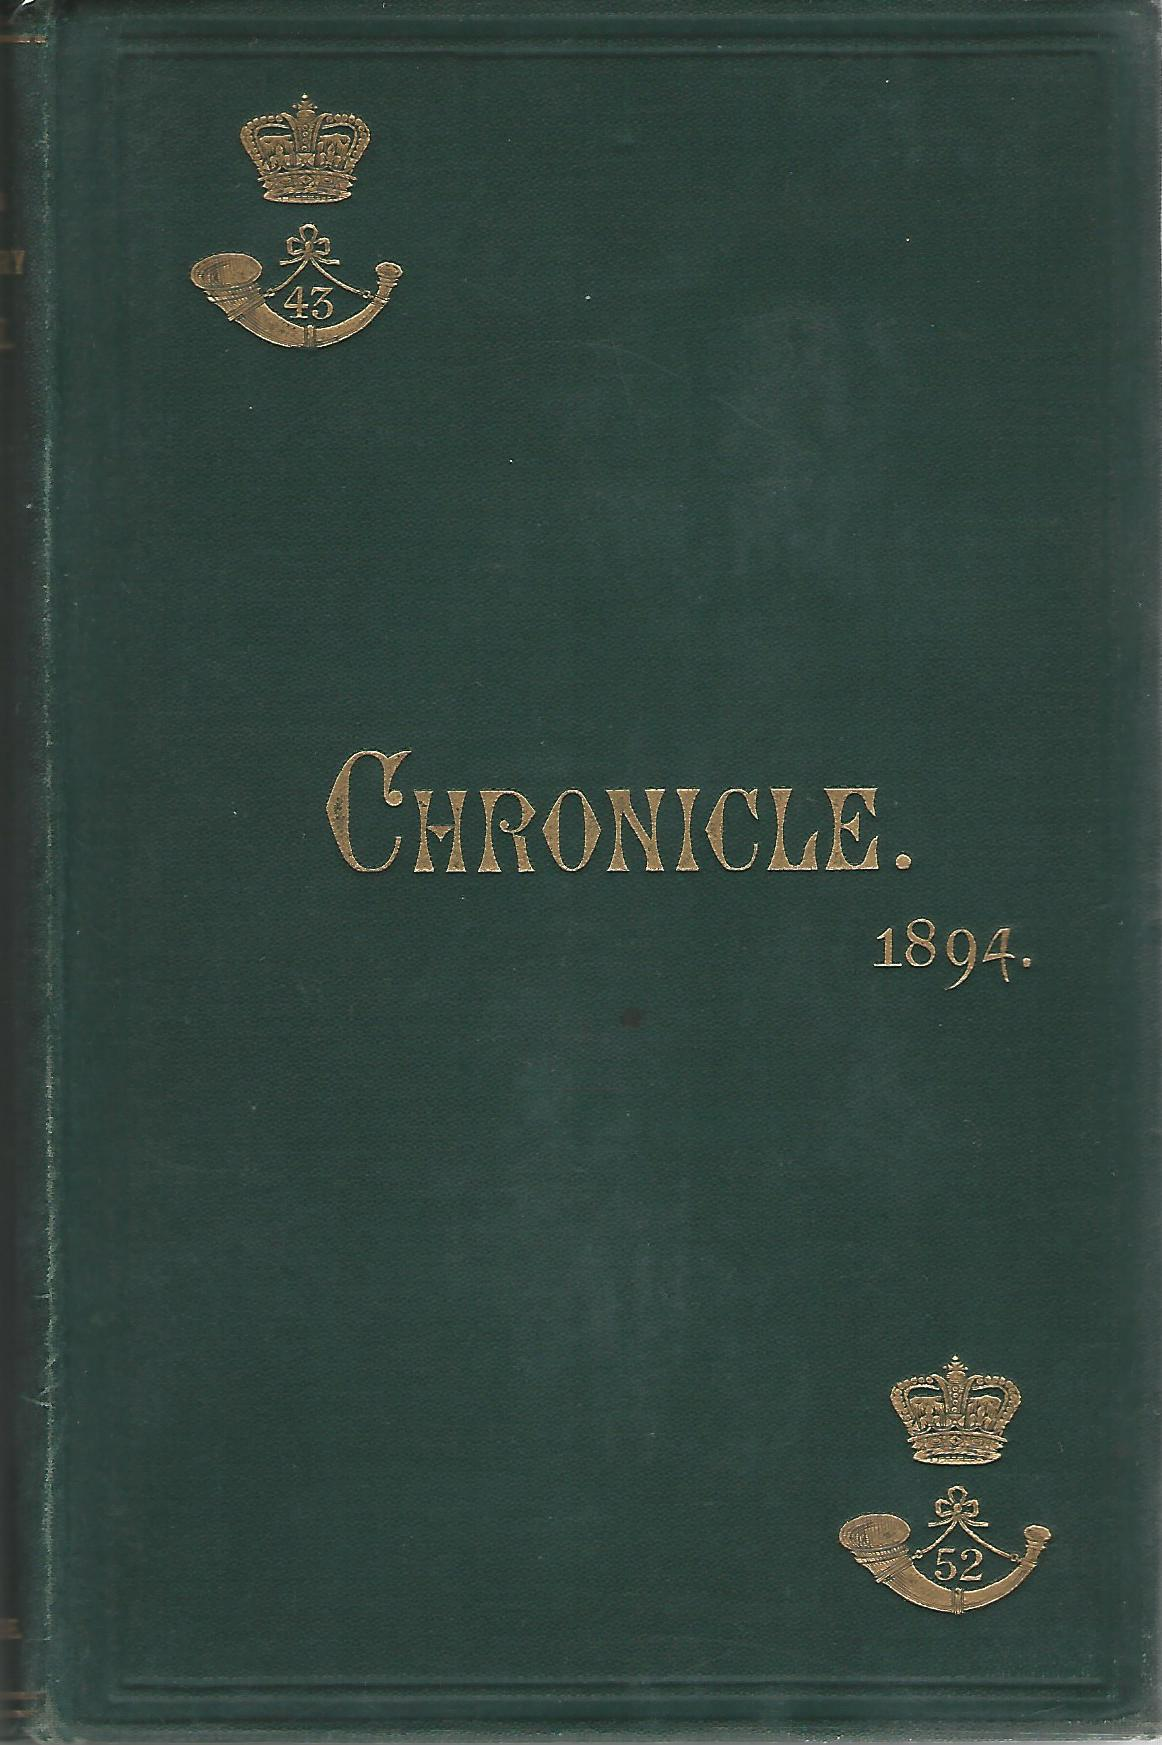 Image for The 43rd & 52nd Light Infantry Chronicle 1894.